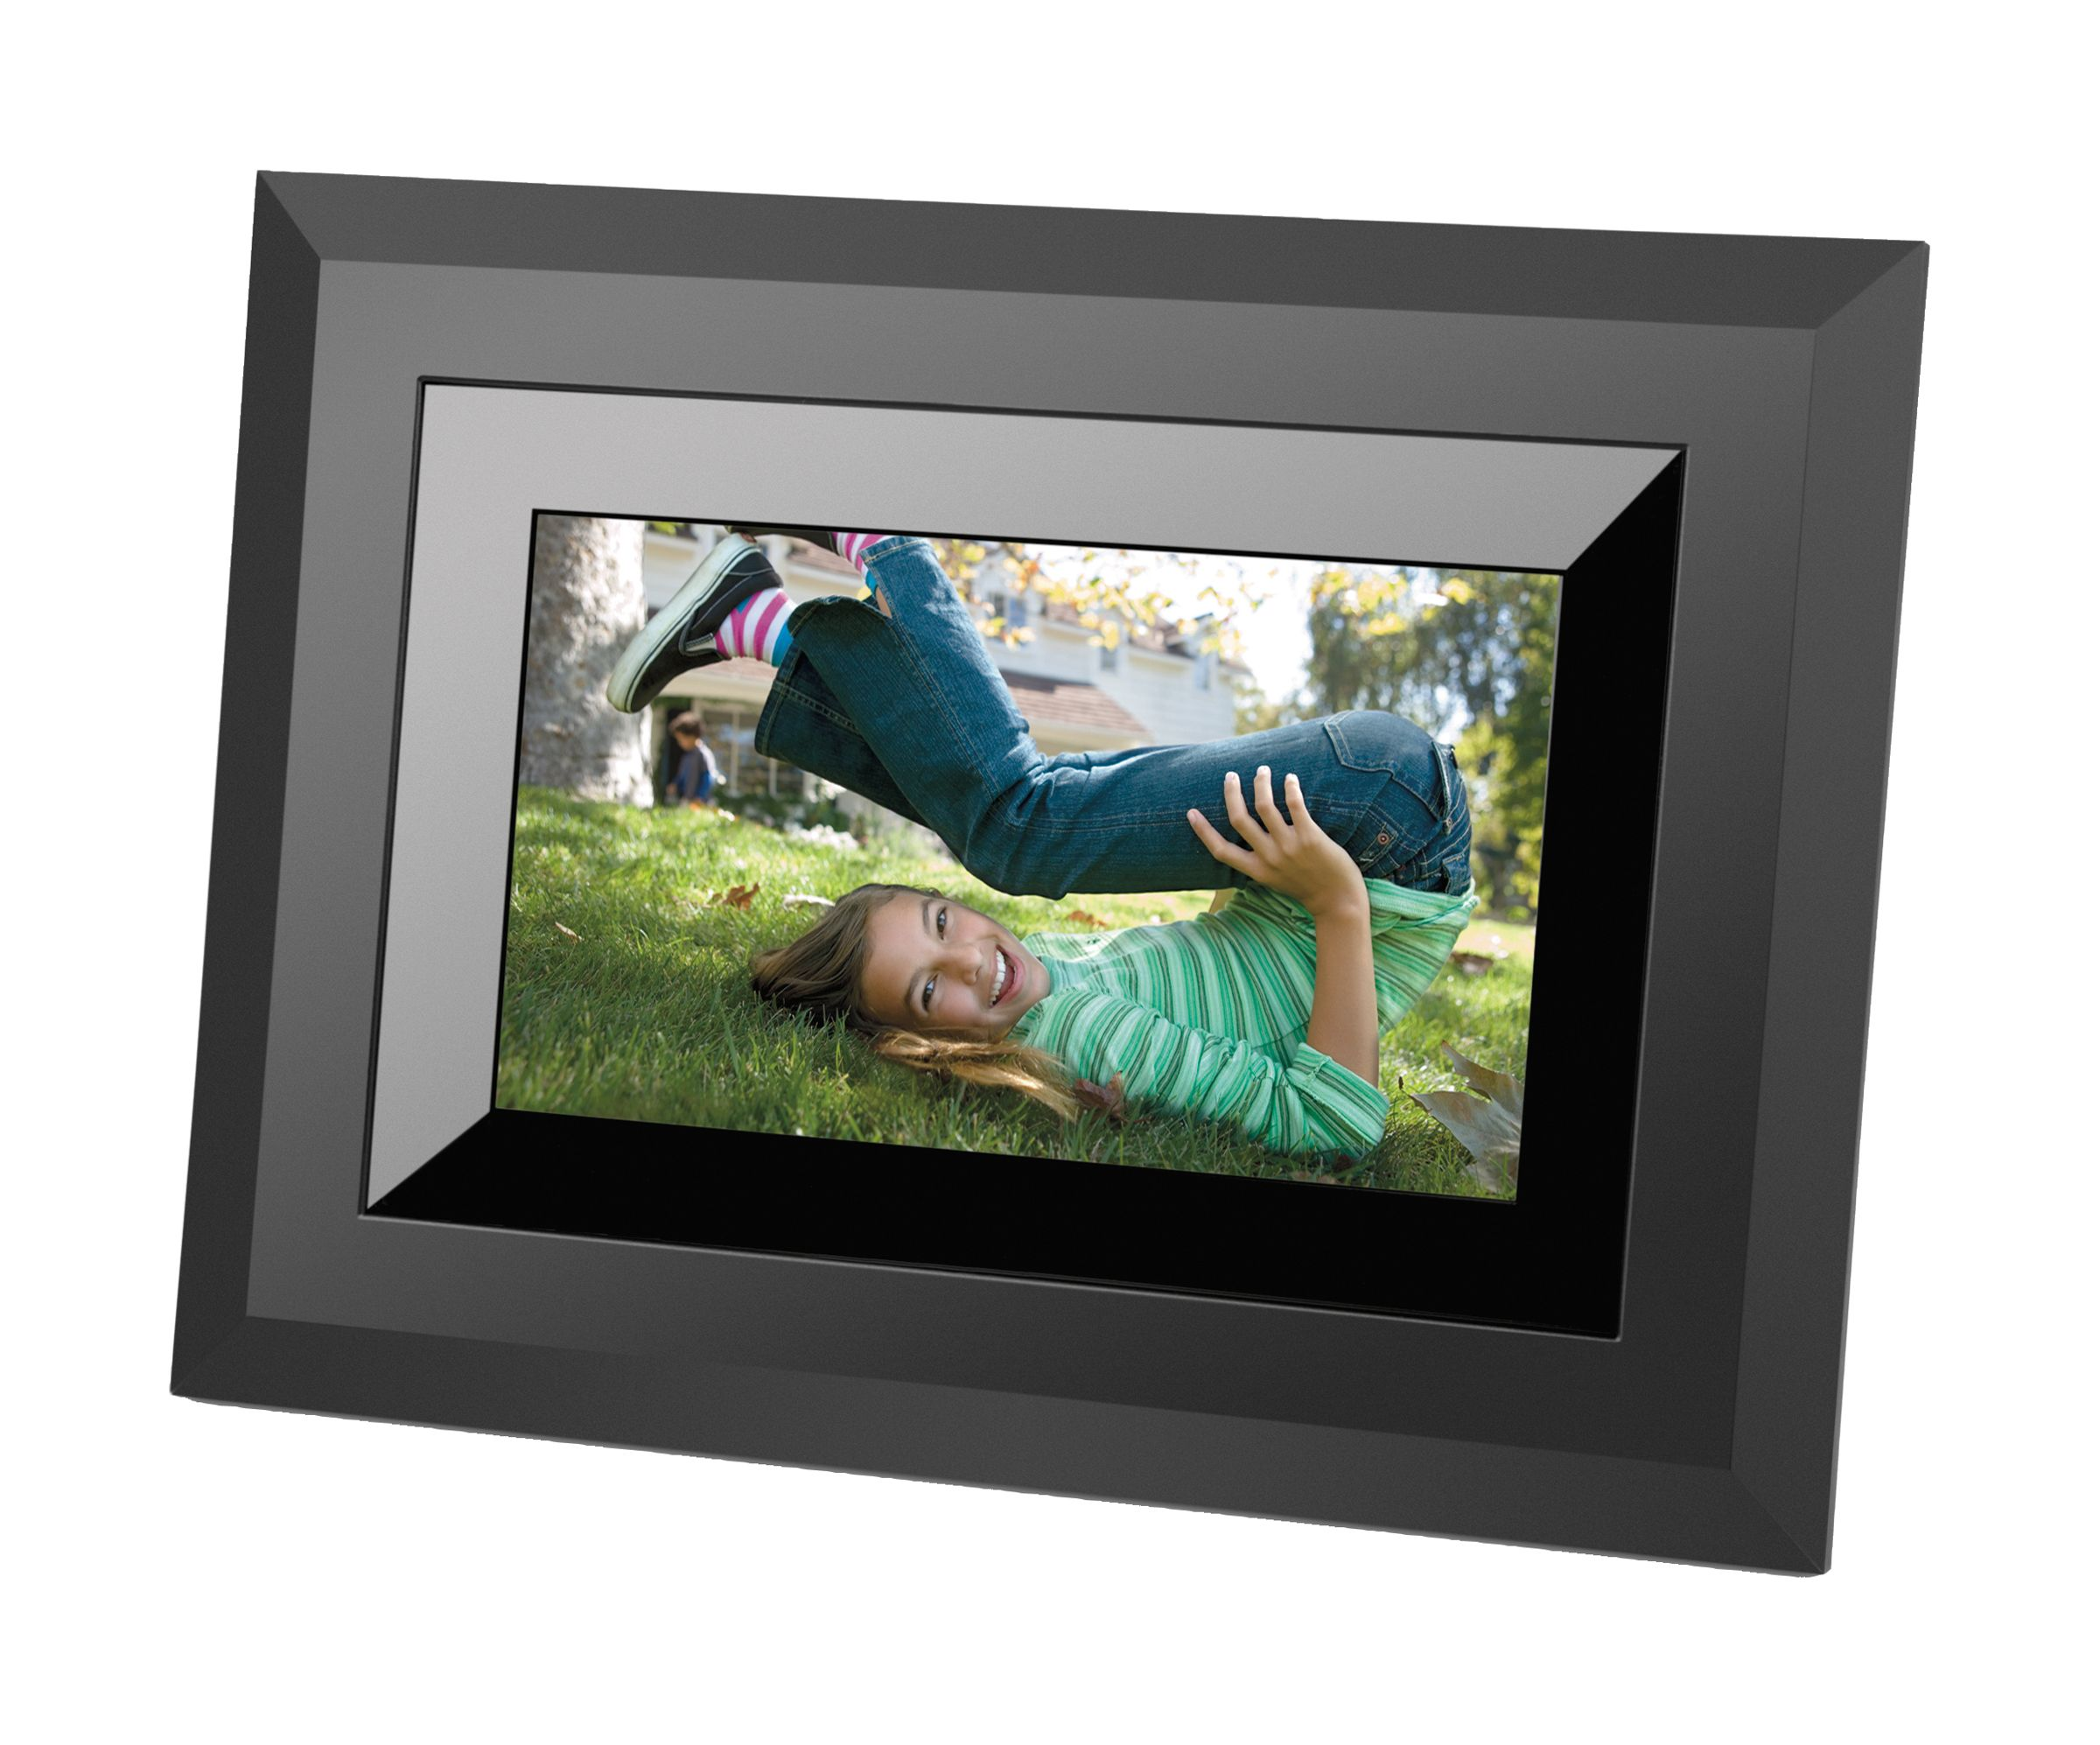 Kmart Digital Photo Frame Kodak Sv710 8370181 7 In Digital Picture Frame With Mp3